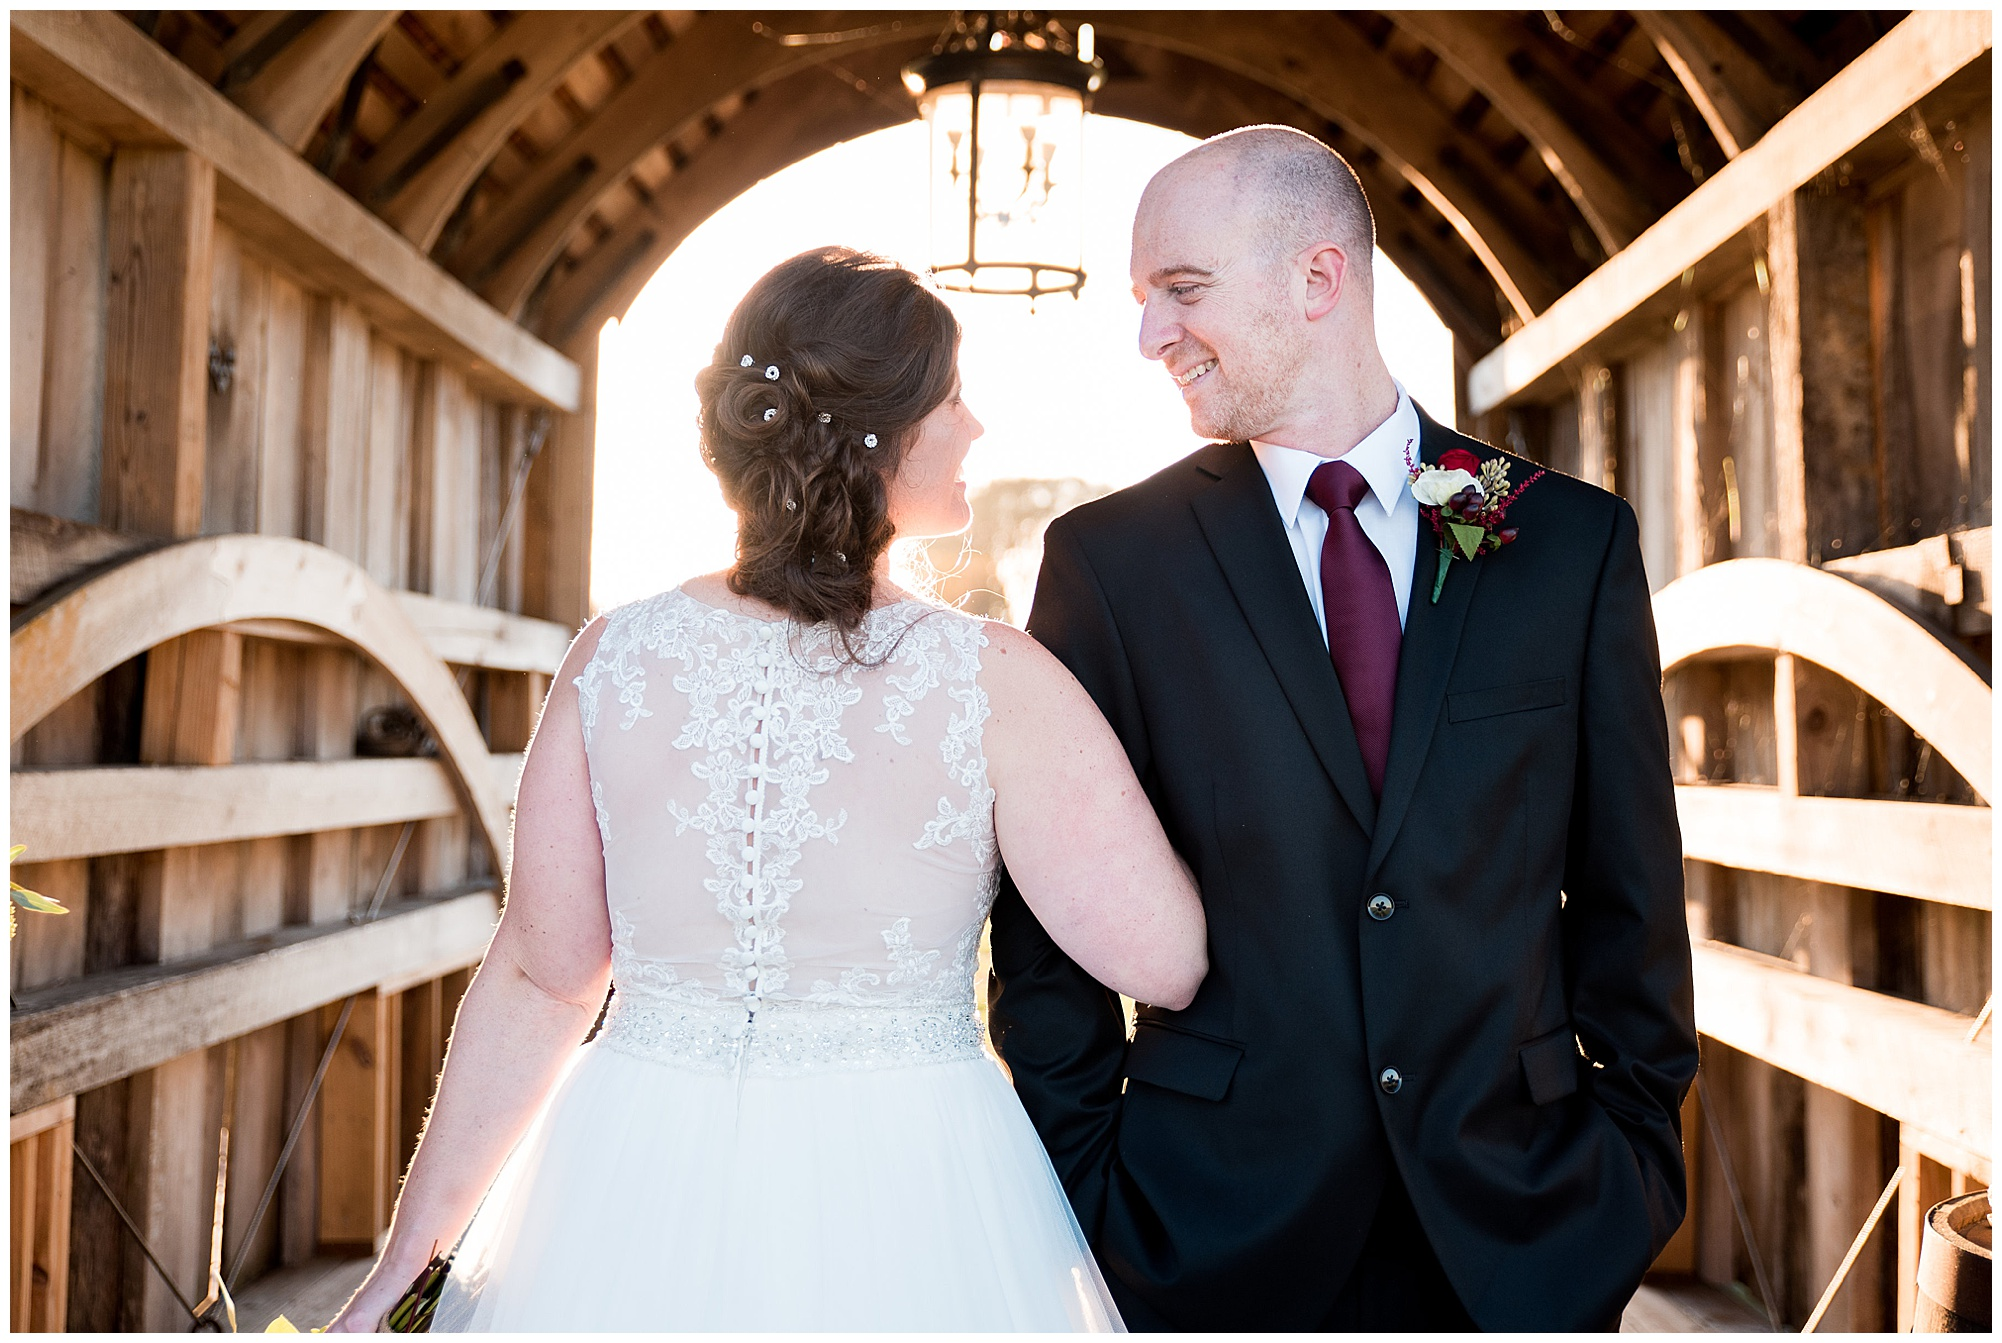 formal portraits outdoors in barn style covered bridge in delaware. happy couple smiling at each other linking arms.